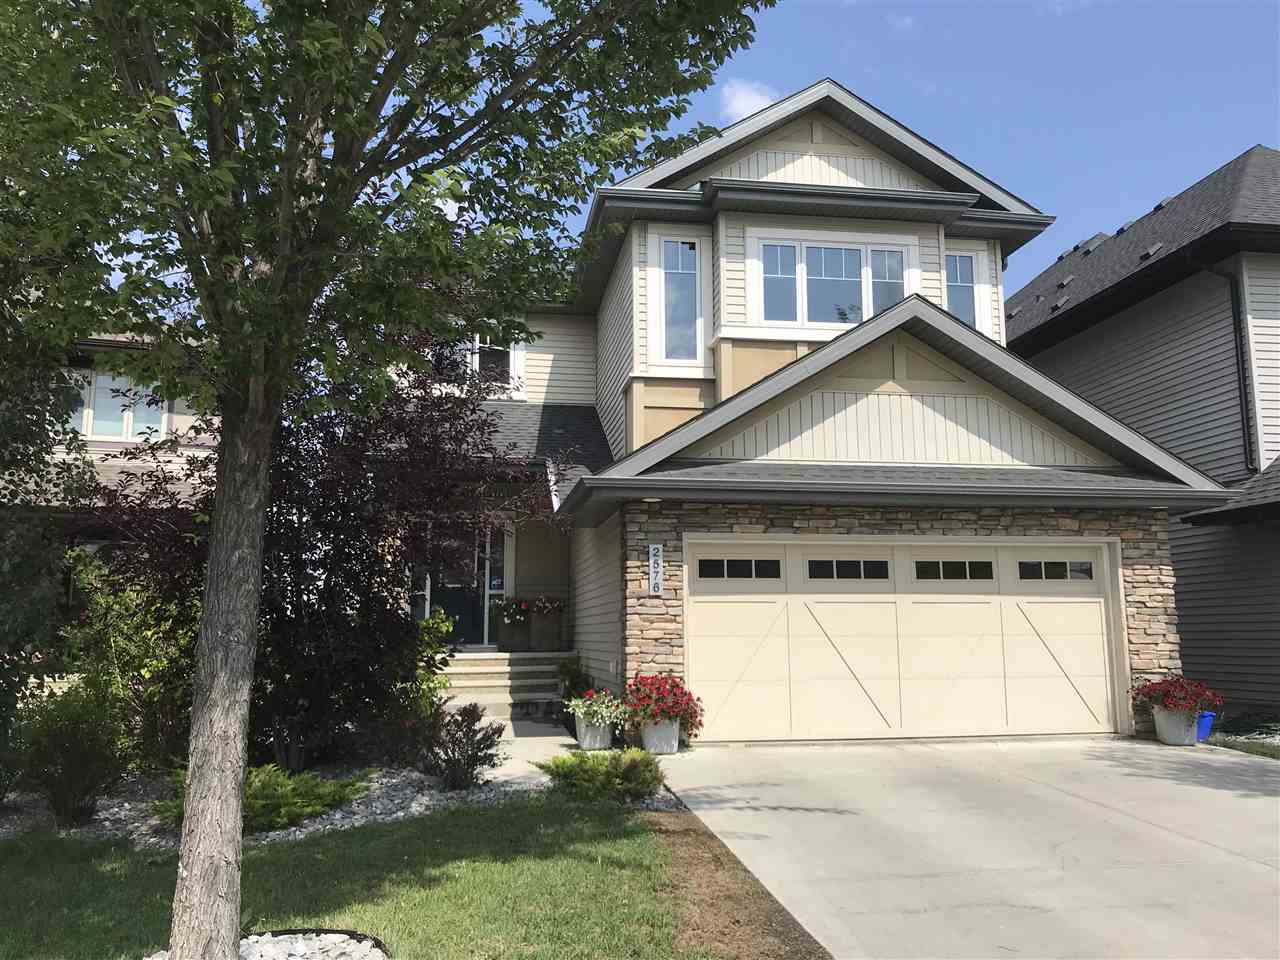 Main Photo: 2576 ANDERSON Way in Edmonton: Zone 56 House for sale : MLS®# E4123949